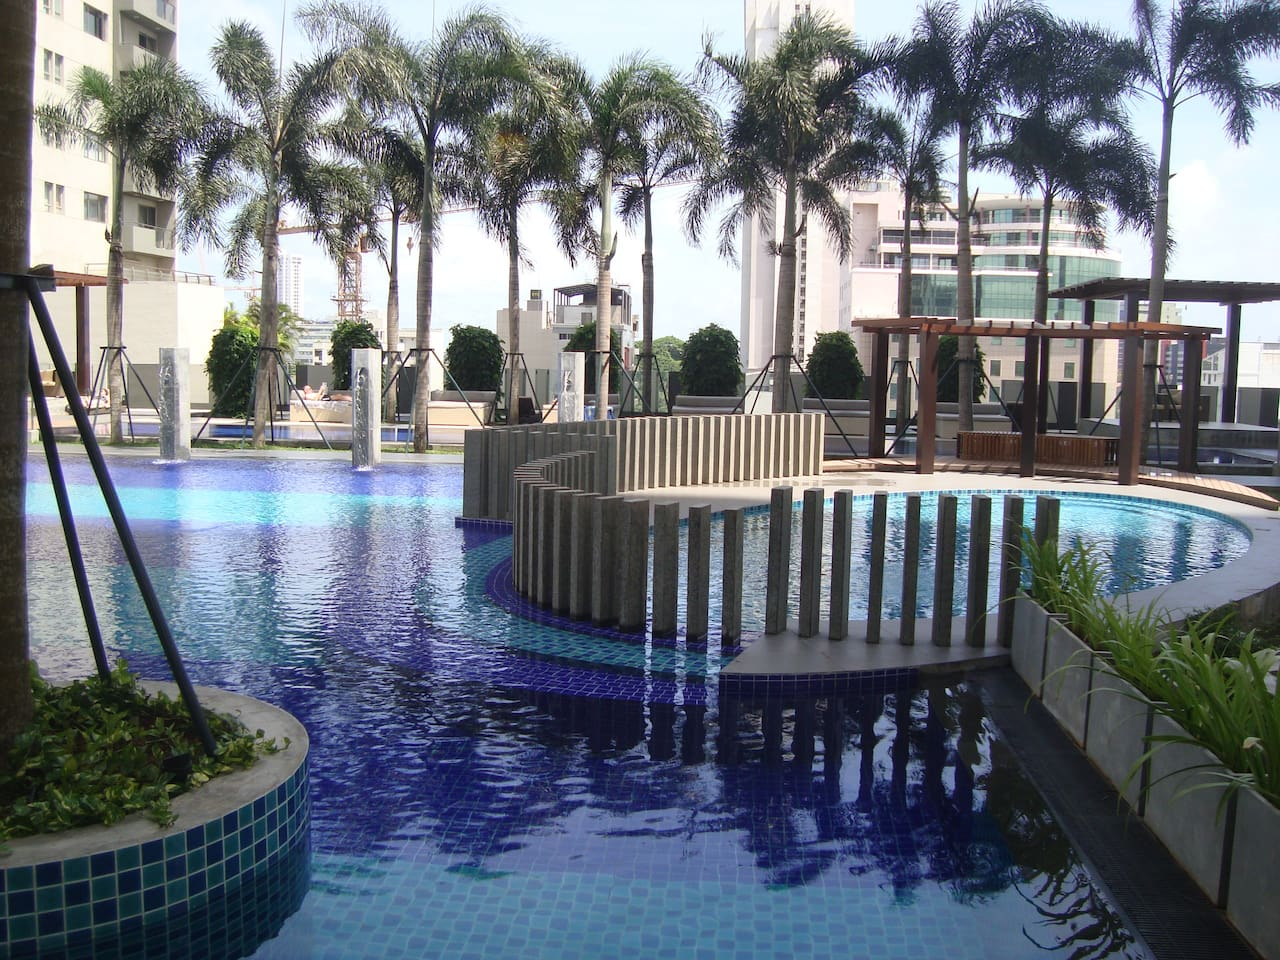 Swimming Pools in Palm fringed landscaped garden